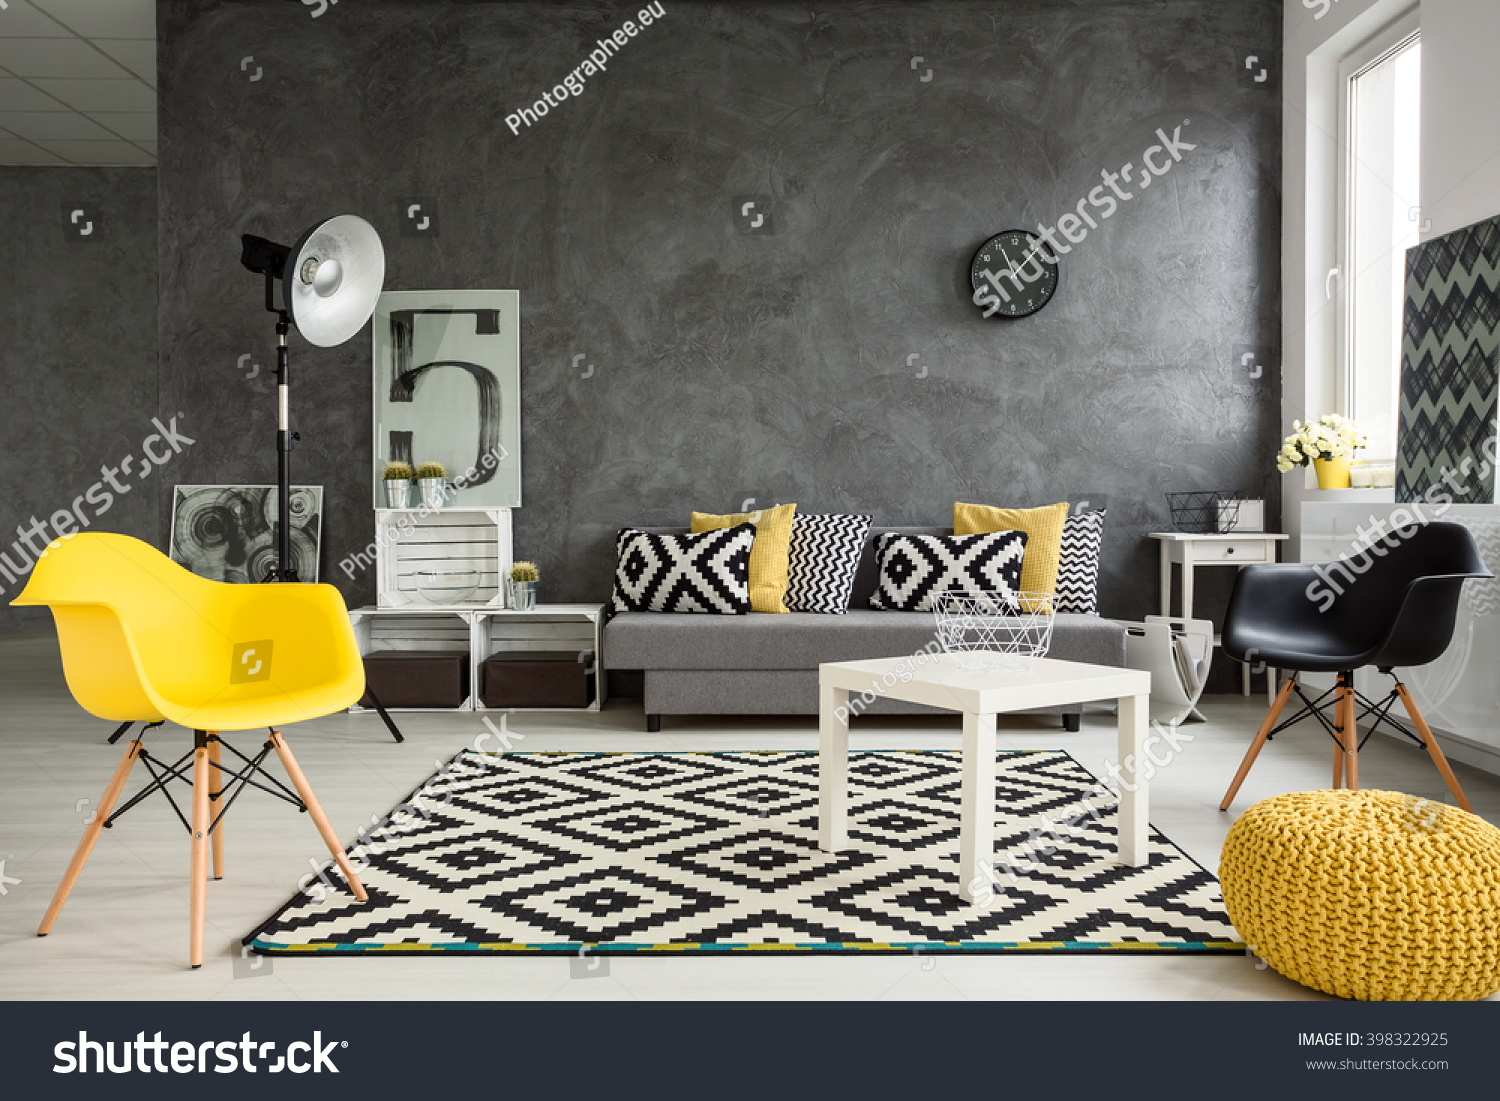 Interior Design Grey Living Rooms Grey Living Room Sofa Chairs Standing Stock Photo 398322925